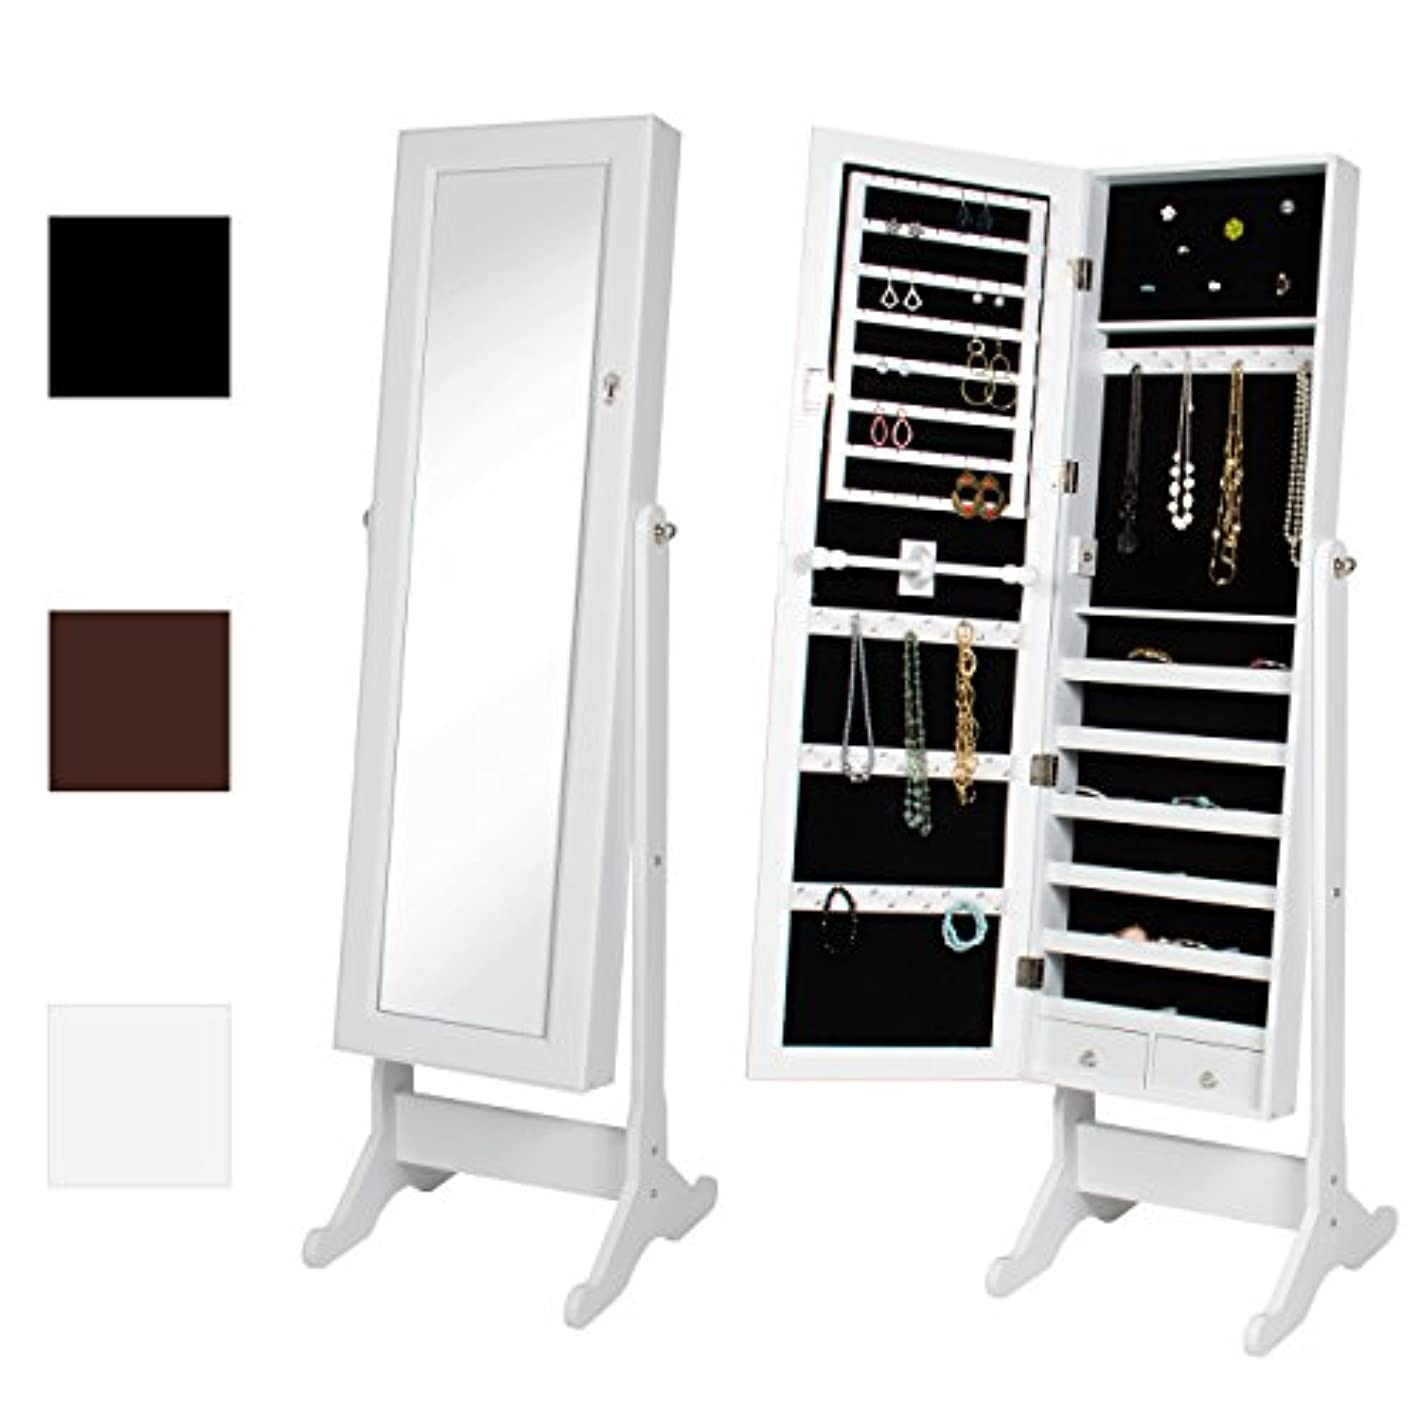 Best Choice Products Full Length Tilting Mirrored Cabinet Jewelry Armoire w/Velvet Lined Interior, 6 Shelves, Stand Rings, Necklaces Hooks, Bracelet Rod, Cubbies, Lock and Key - White